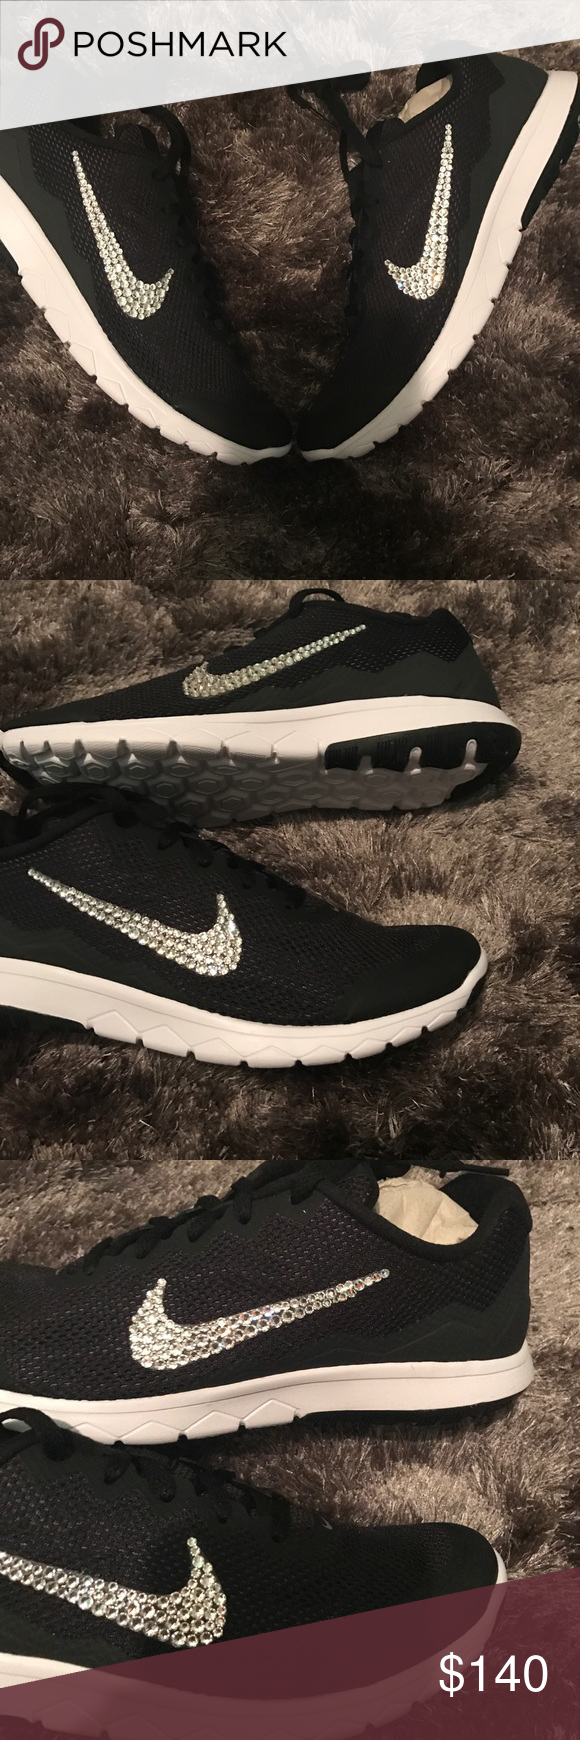 Women s Nike Bling Flex experience sneakers NEW💎 Brand new in box women s  Nike sneakers customized with Swarovski crystals hand placed on the outside  ... d3a36f3b9